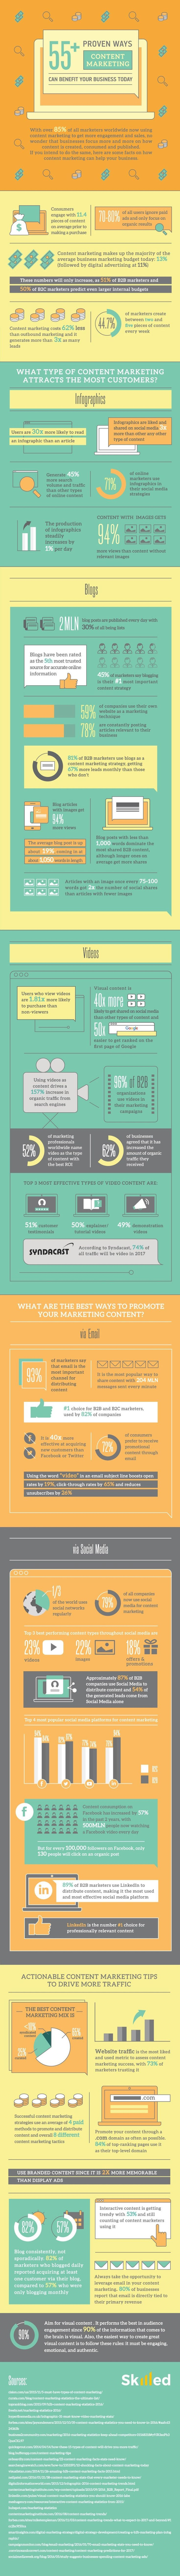 55+ Proven Ways Content Marketing Can Help Your Business [Infographic] | Social Media Today